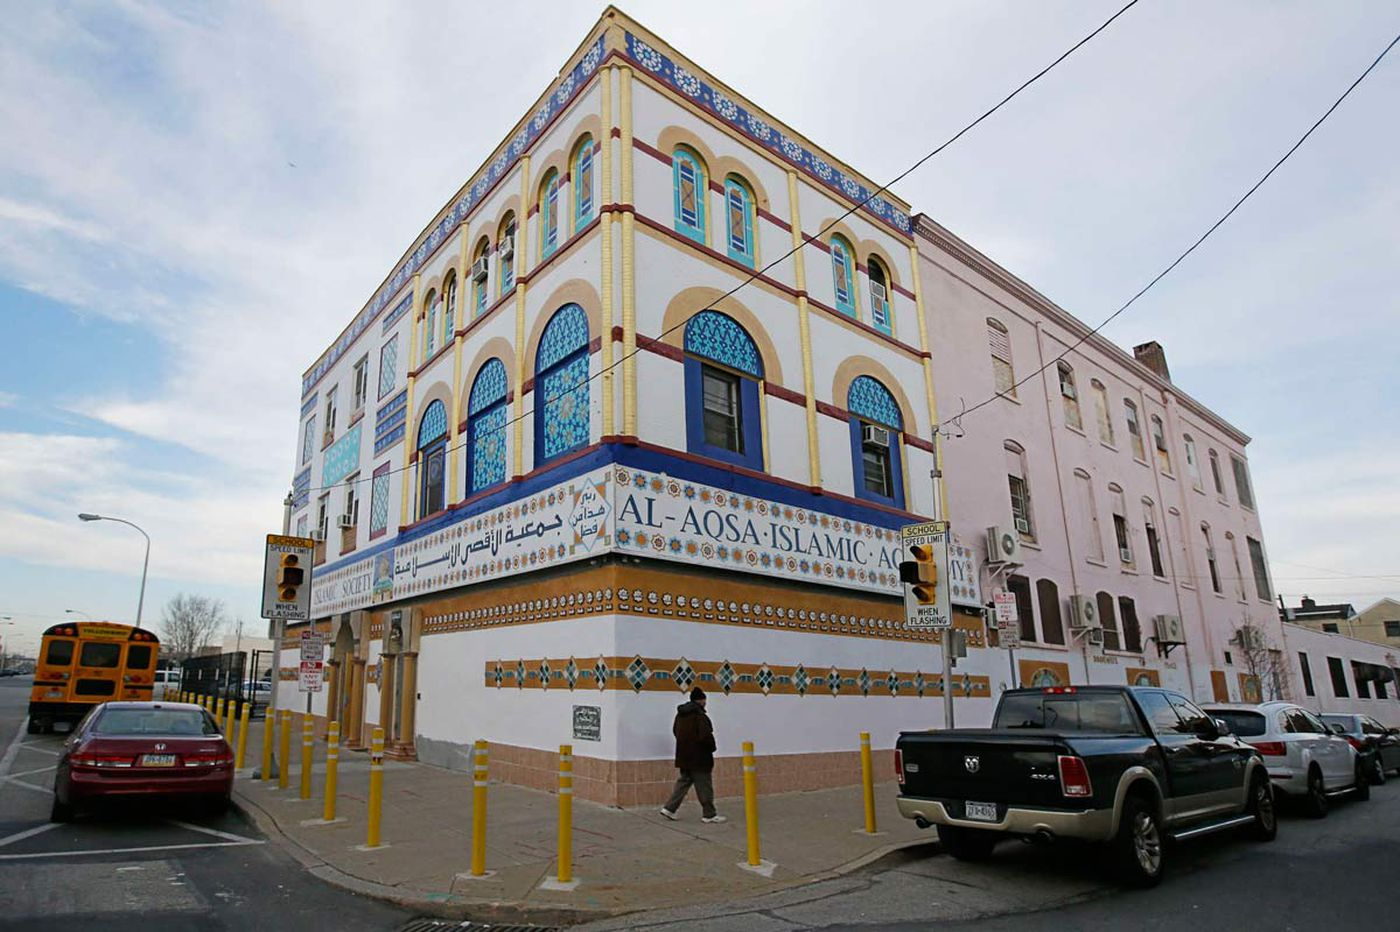 North Philadelphia mosque officials apologize for anti-Semitic statements delivered in sermons by guest imam